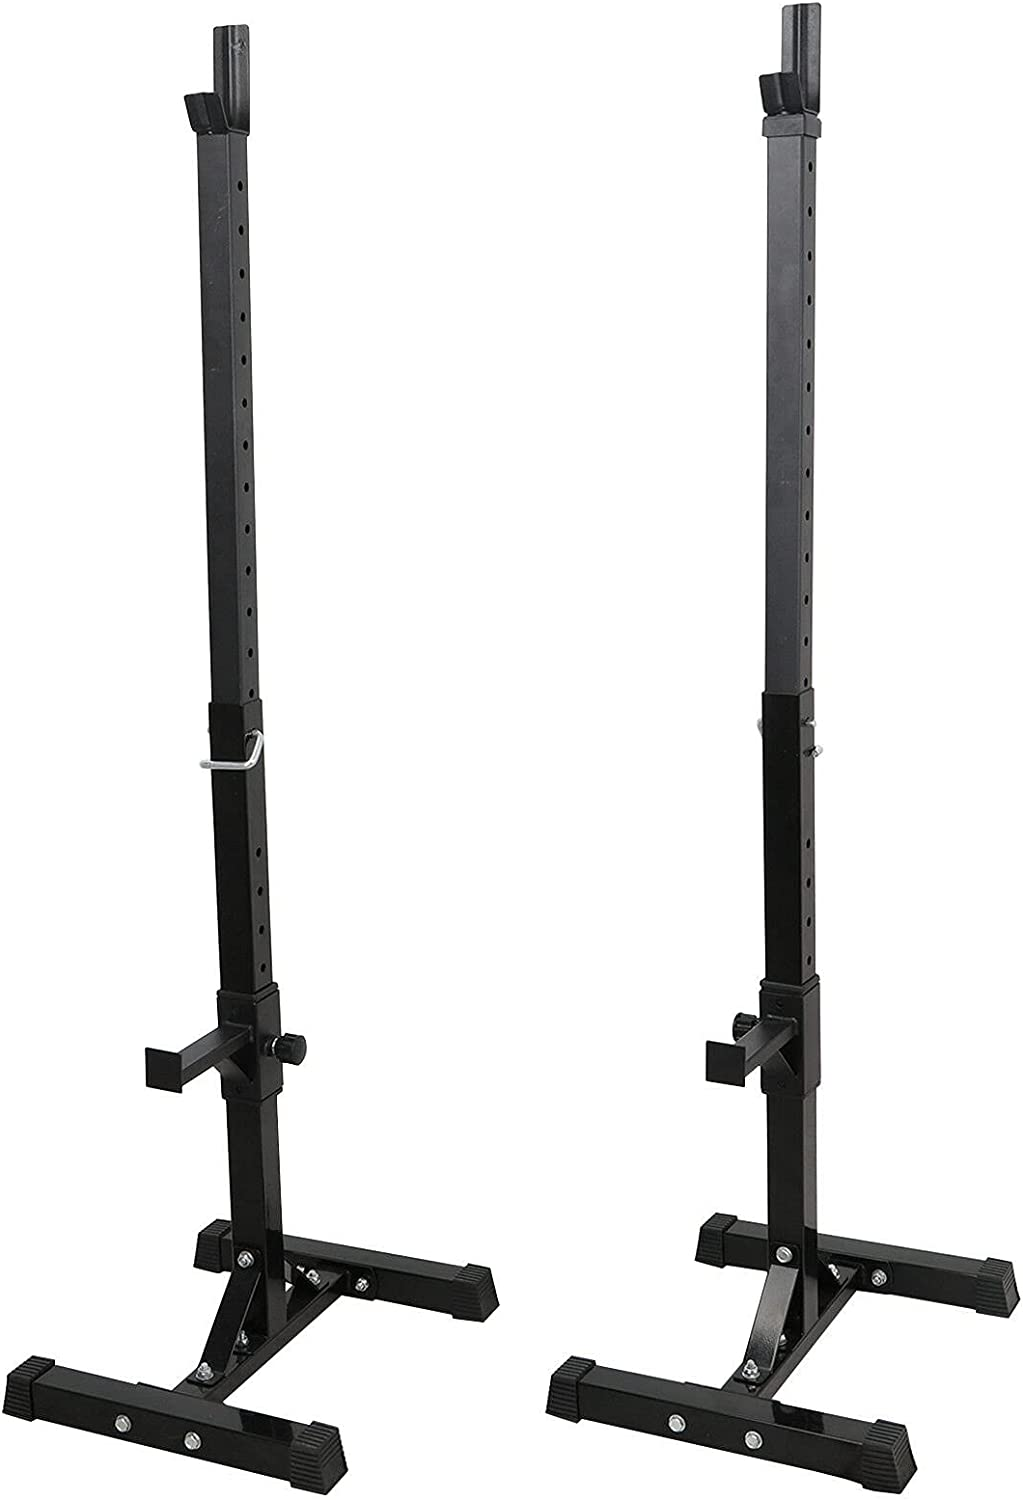 ZLYY Pair of Adjustable Rack Sturdy Squat Free shipping anywhere in the nation Barbell Super-cheap Bench Pr Steel